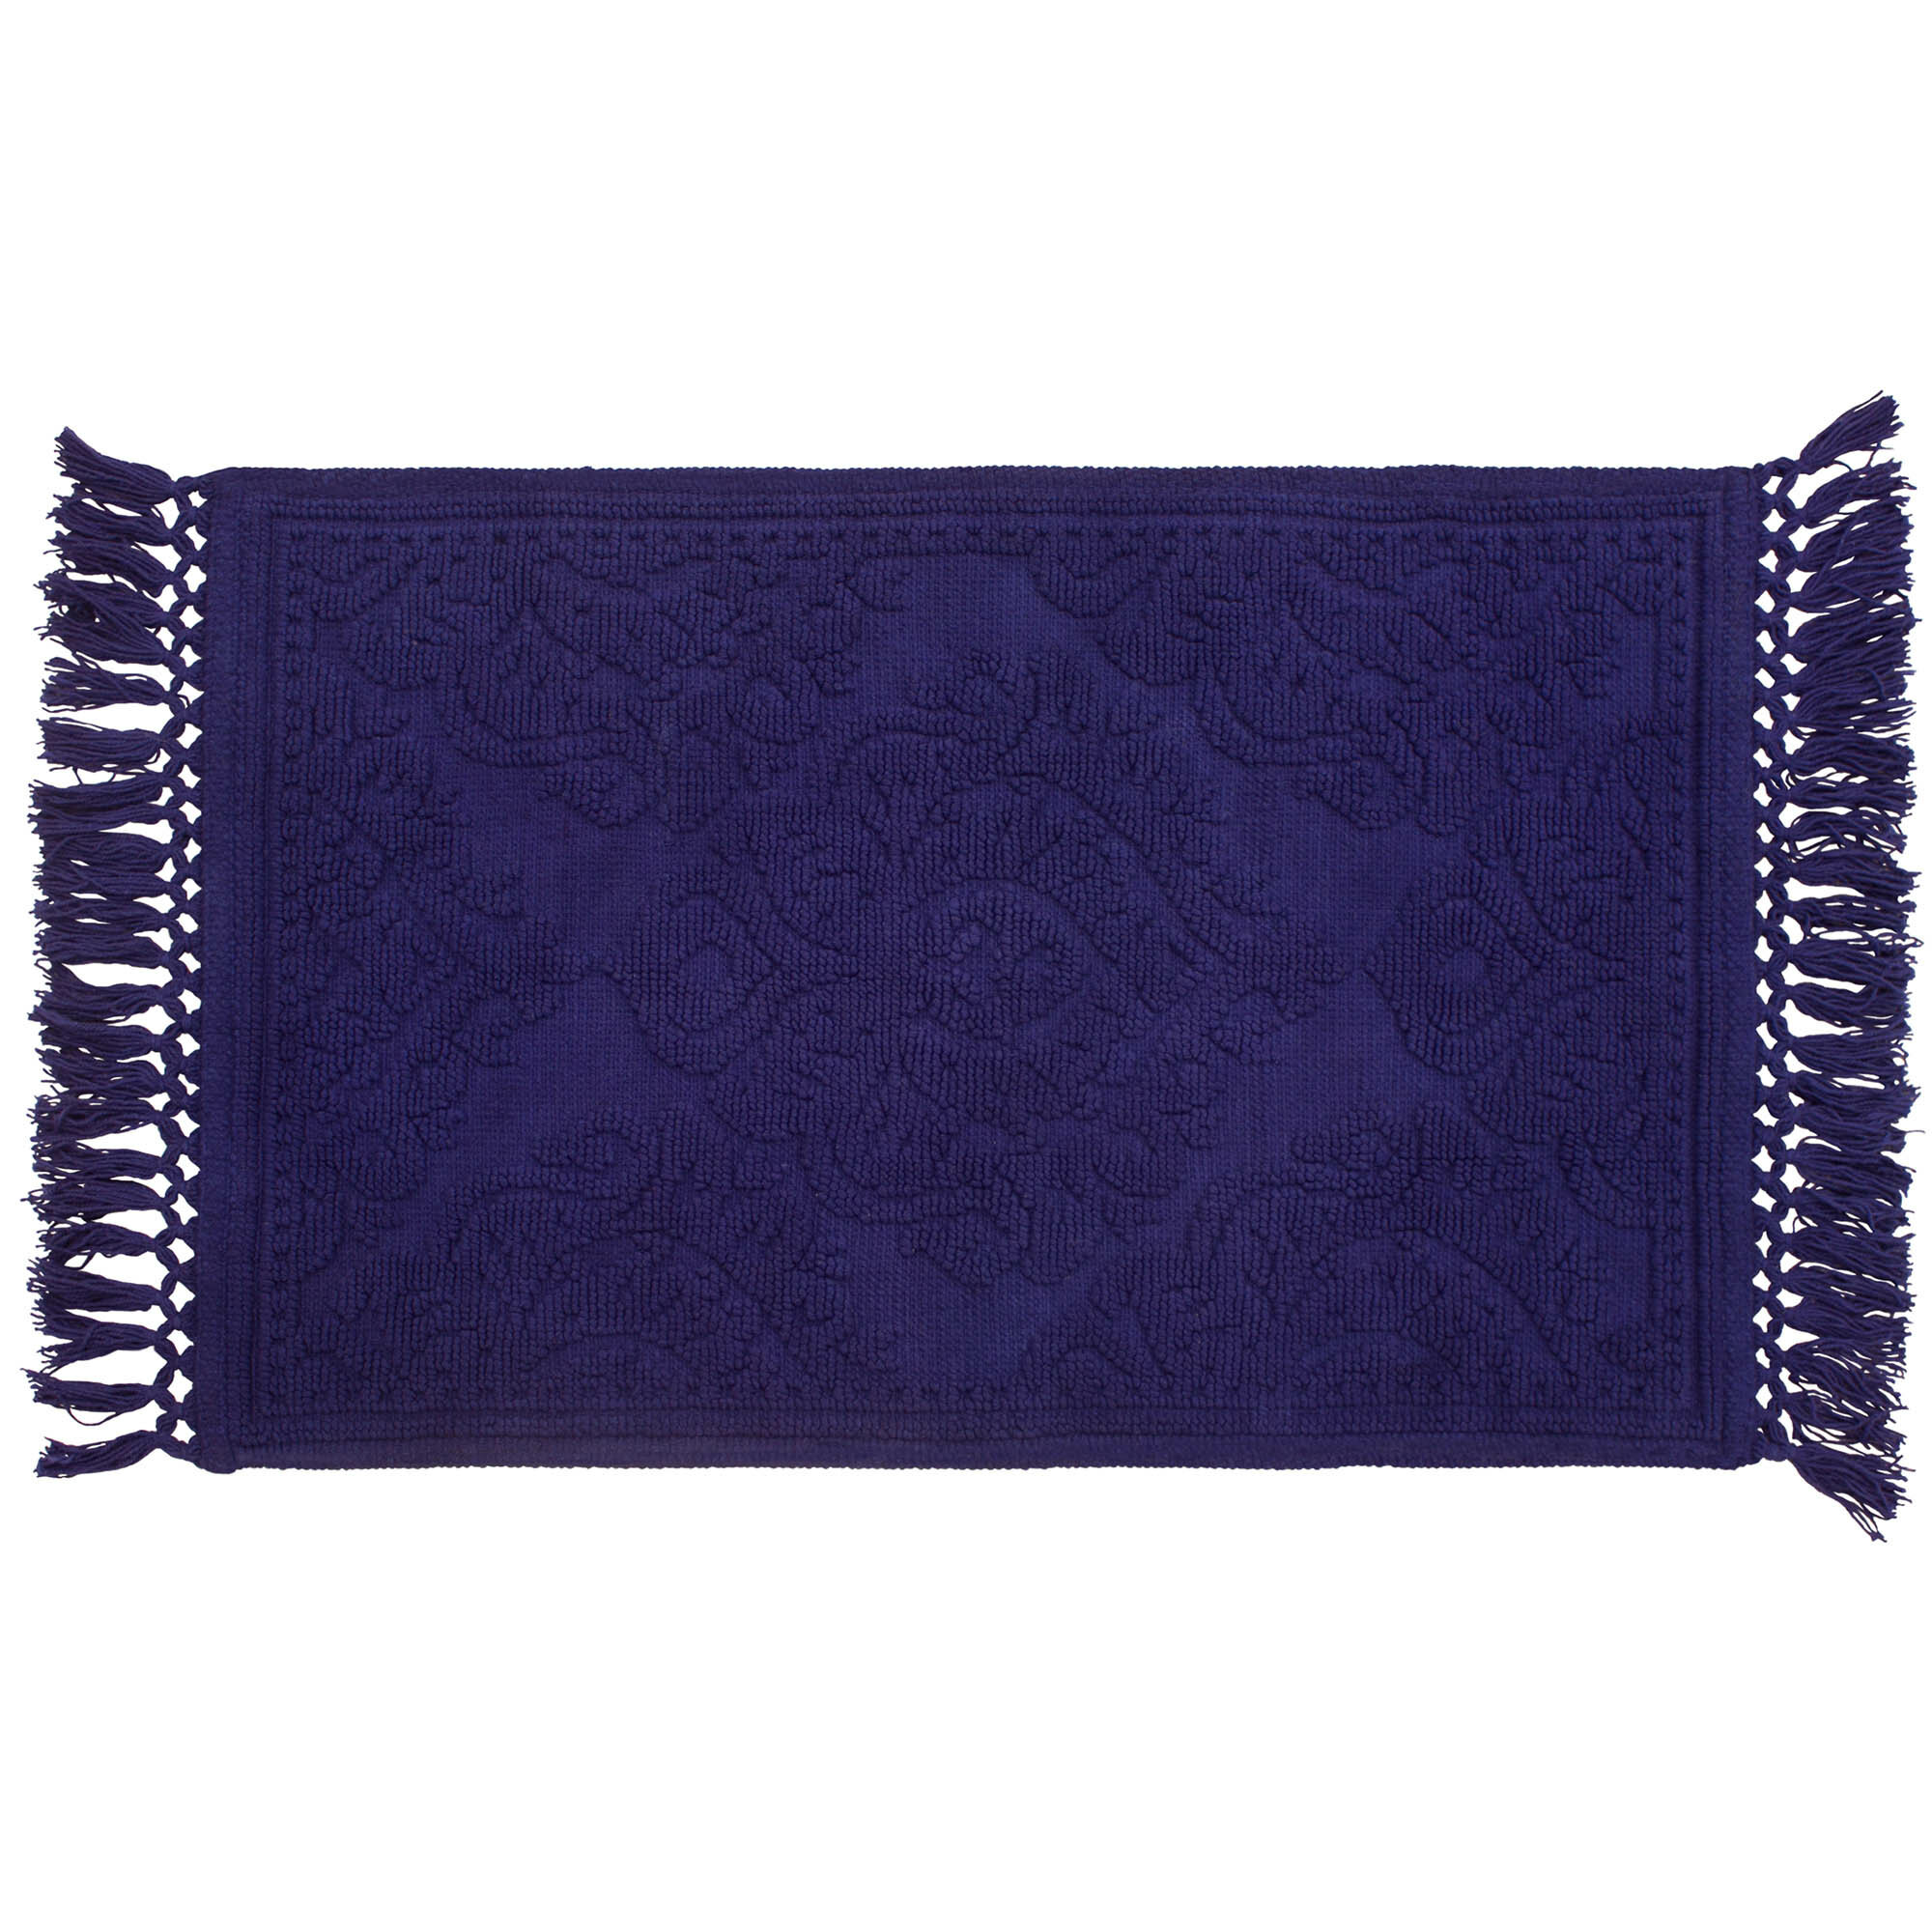 mats bath click mat soho expand to rug solid or rugs color purple contour p